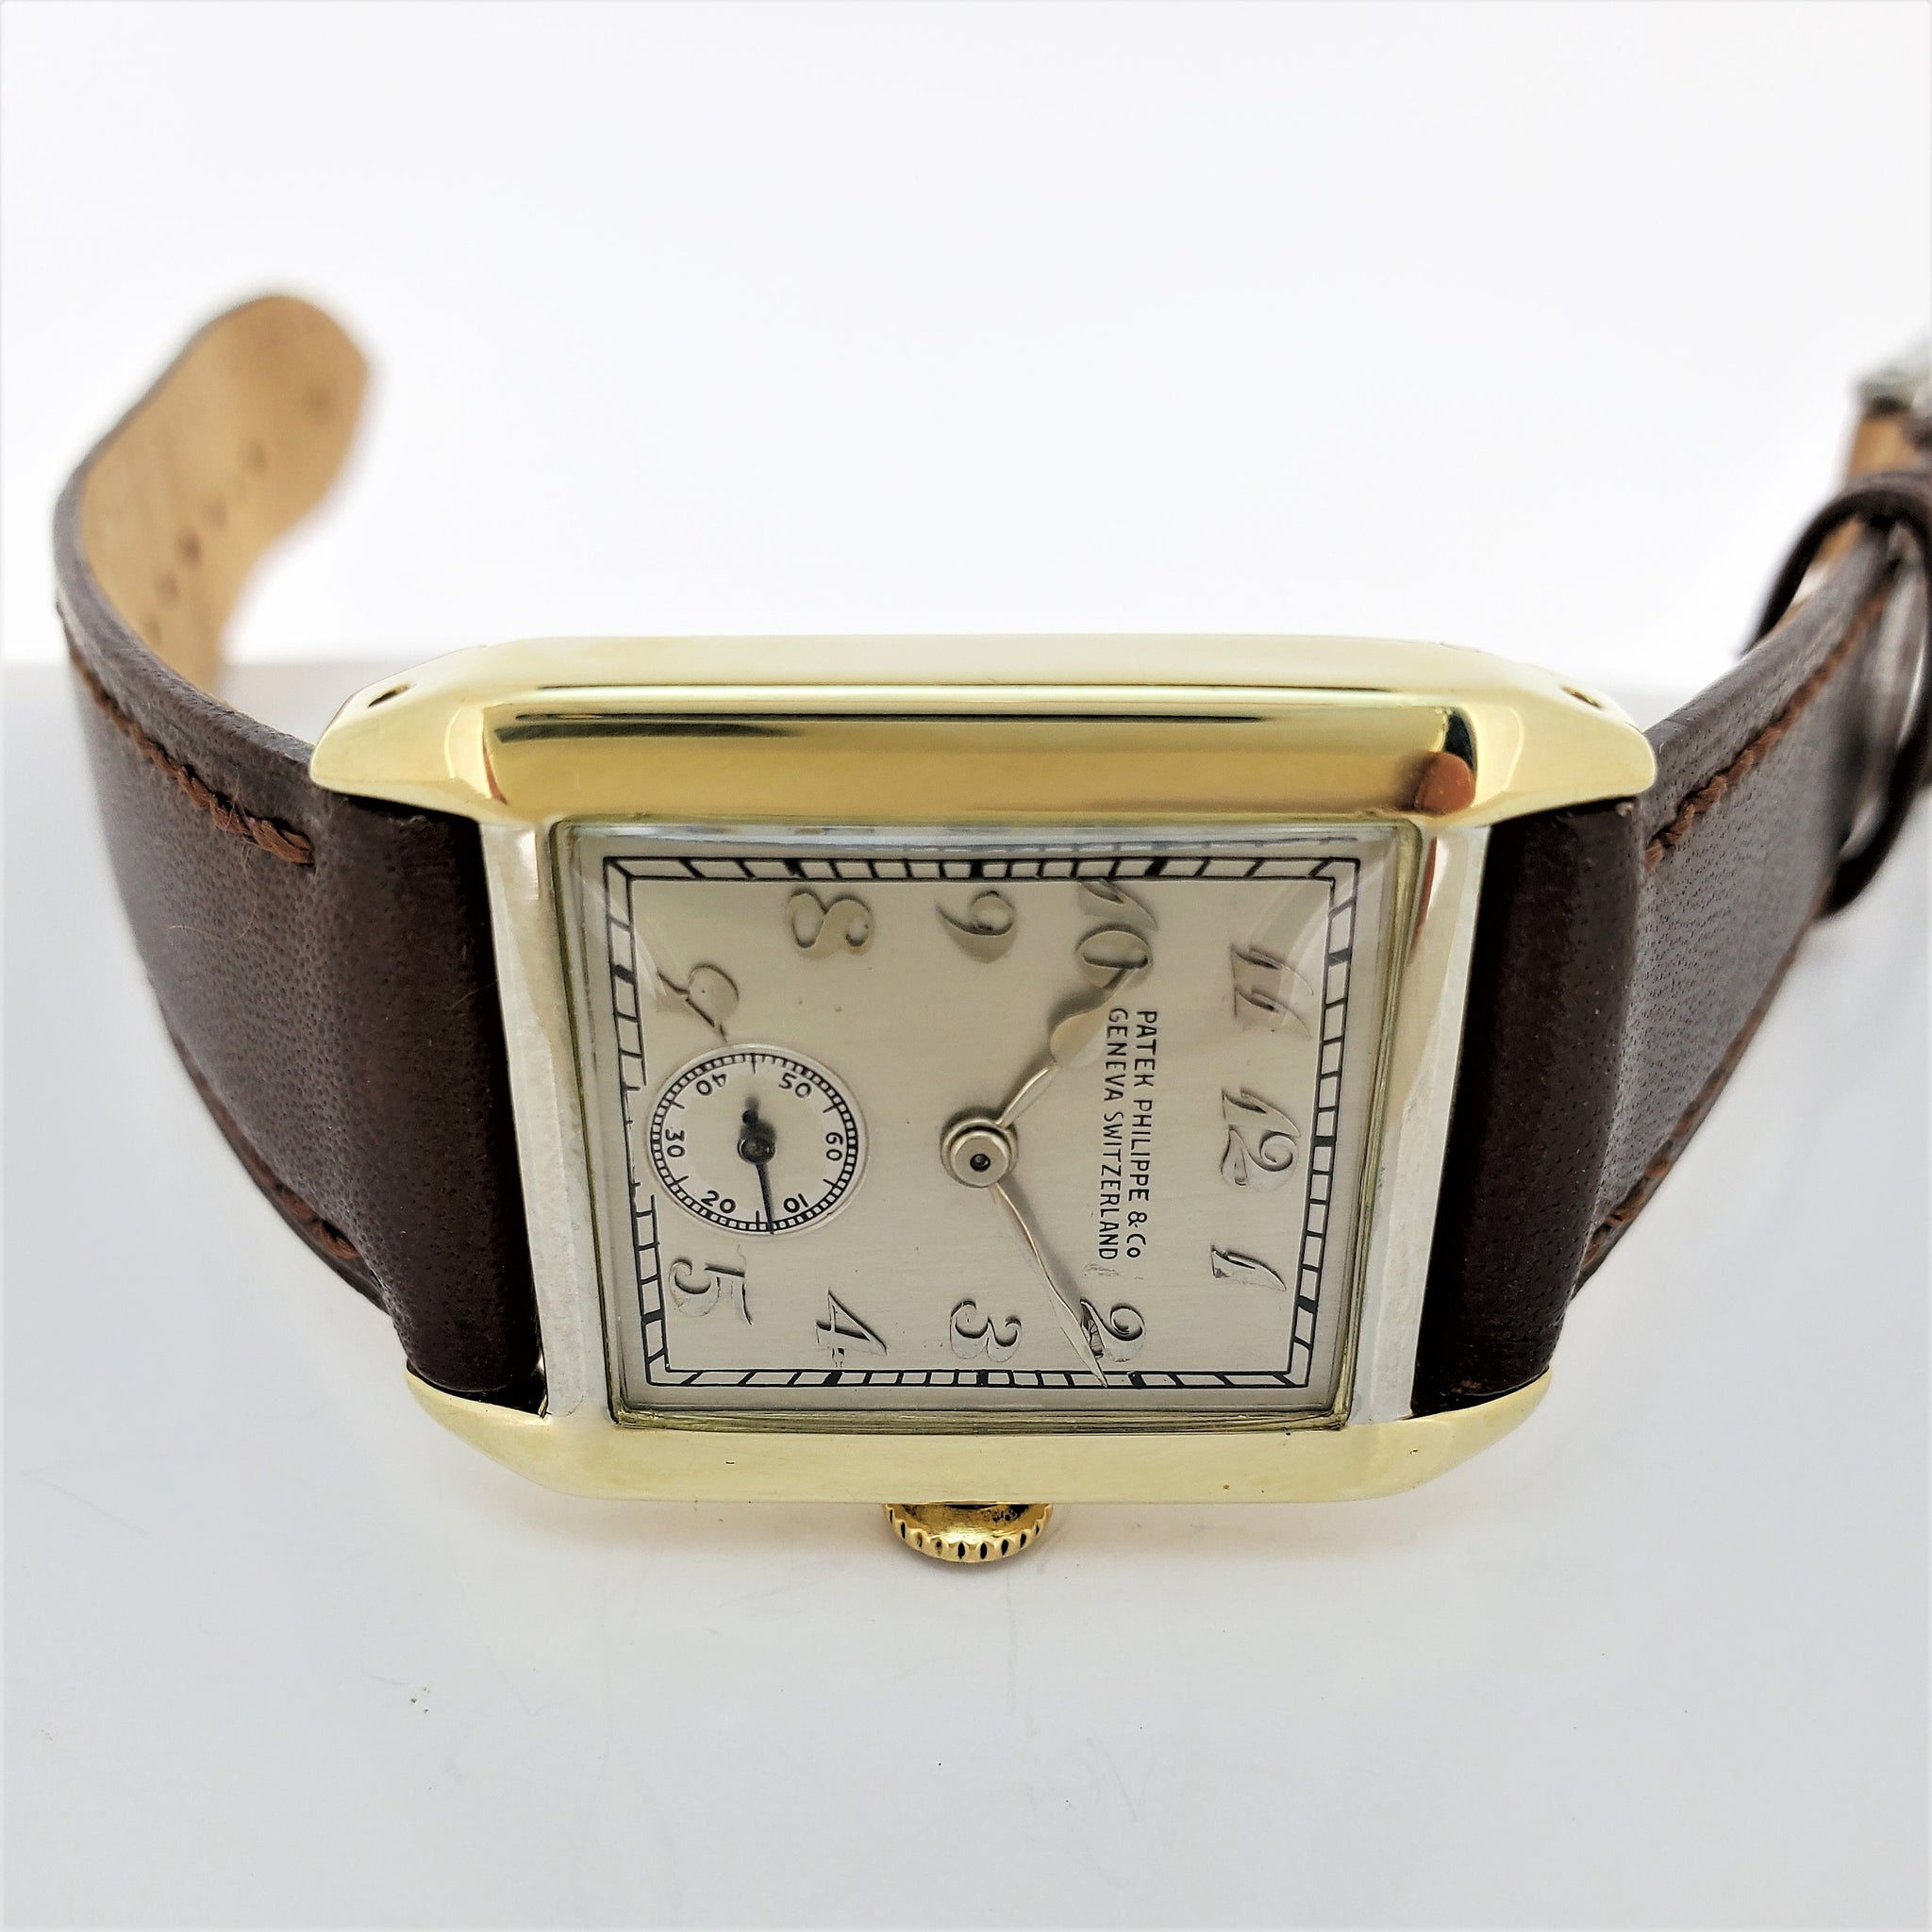 Patek Philippe 45JG Tank Style Yellow and White Gold Art Deco Watch Circa 1926